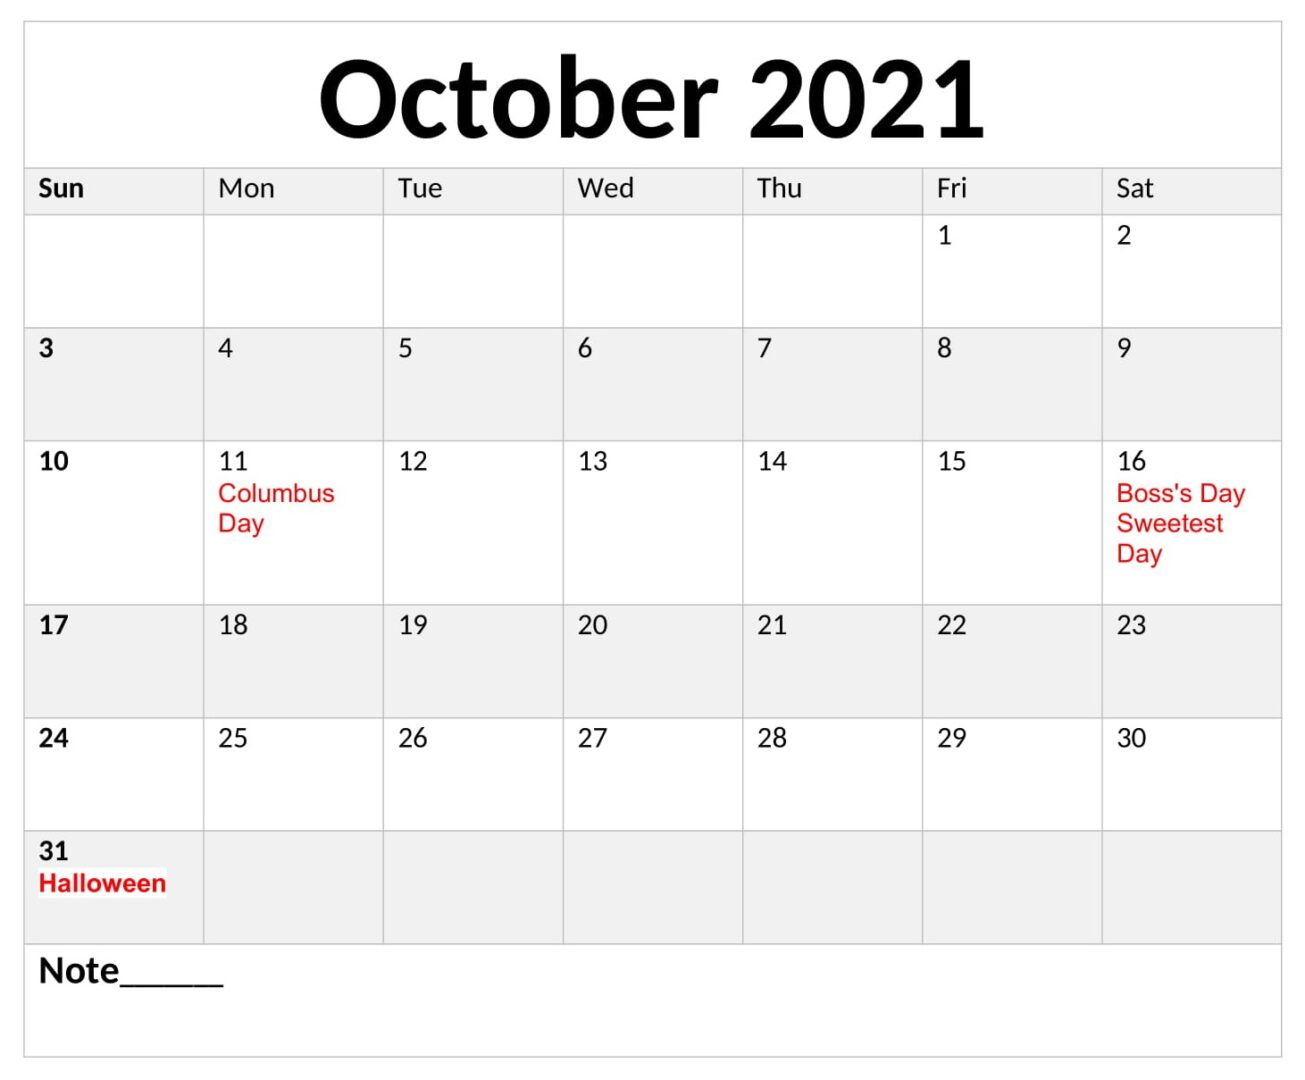 October 2021 Calendar With Holiday